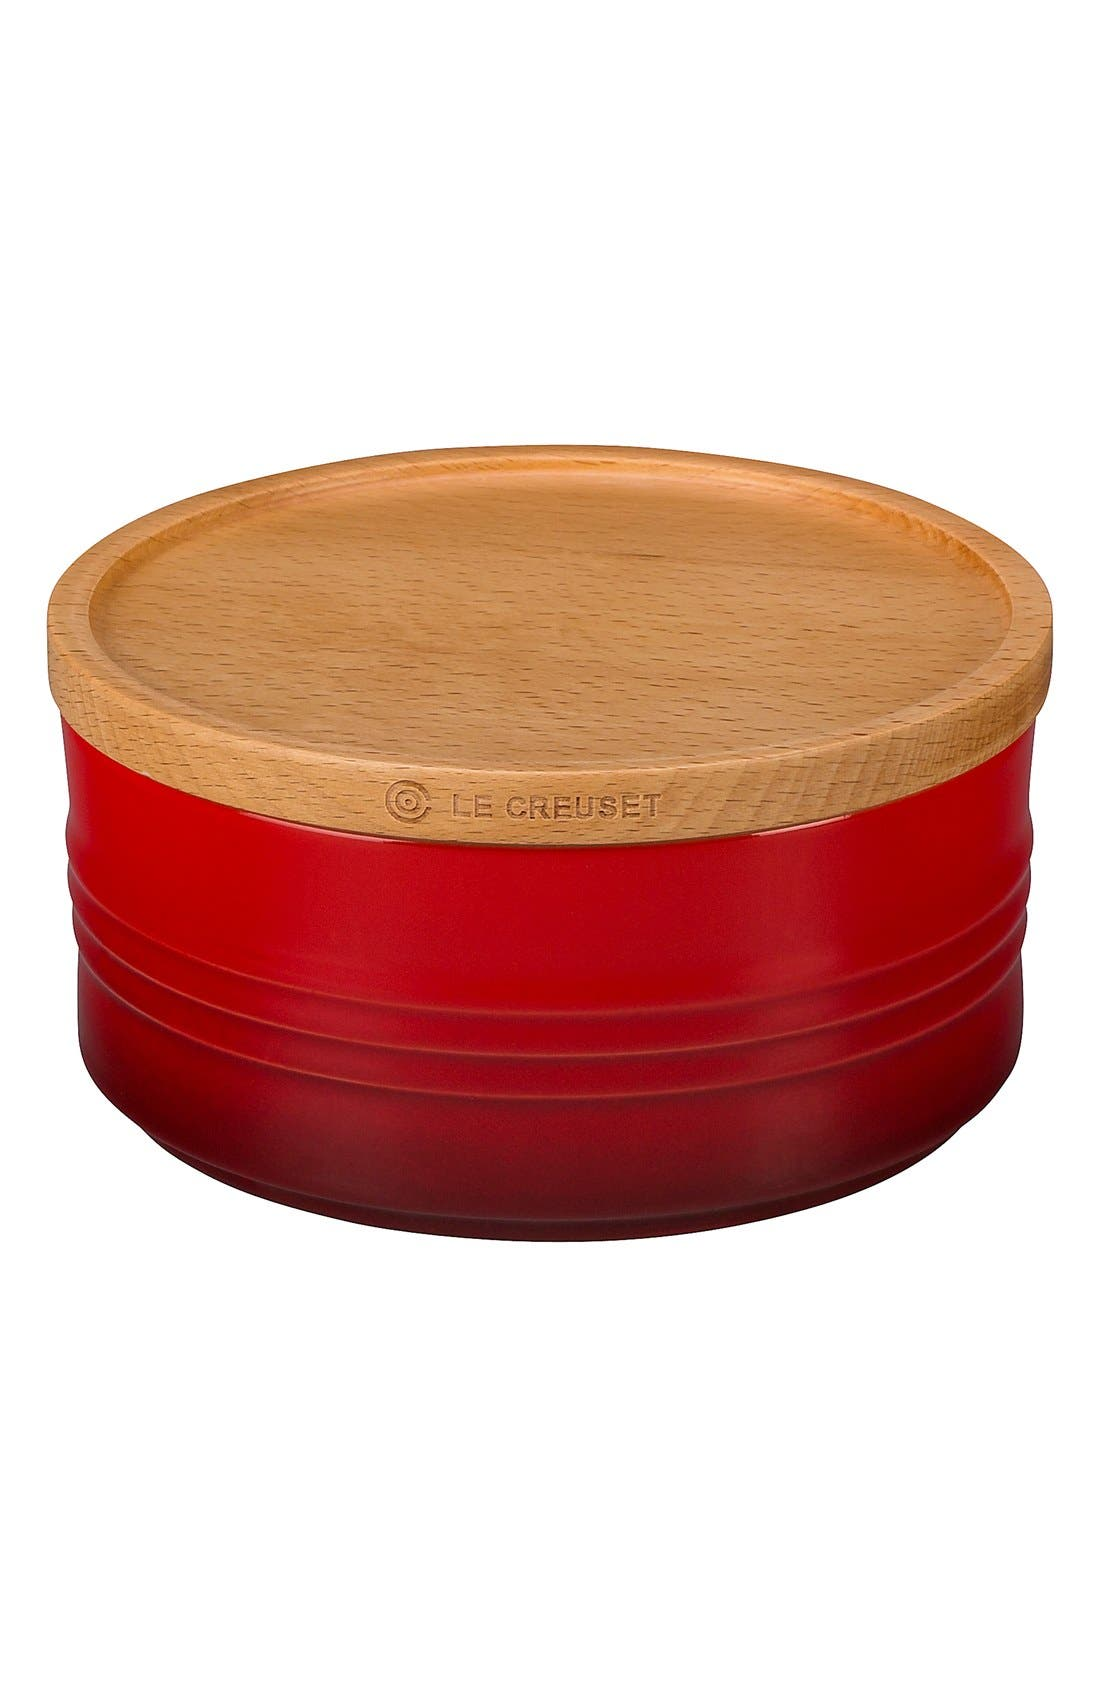 Alternate Image 1 Selected - Le Creuset Glazed Stoneware 23 Ounce Storage Canister with Wooden Lid